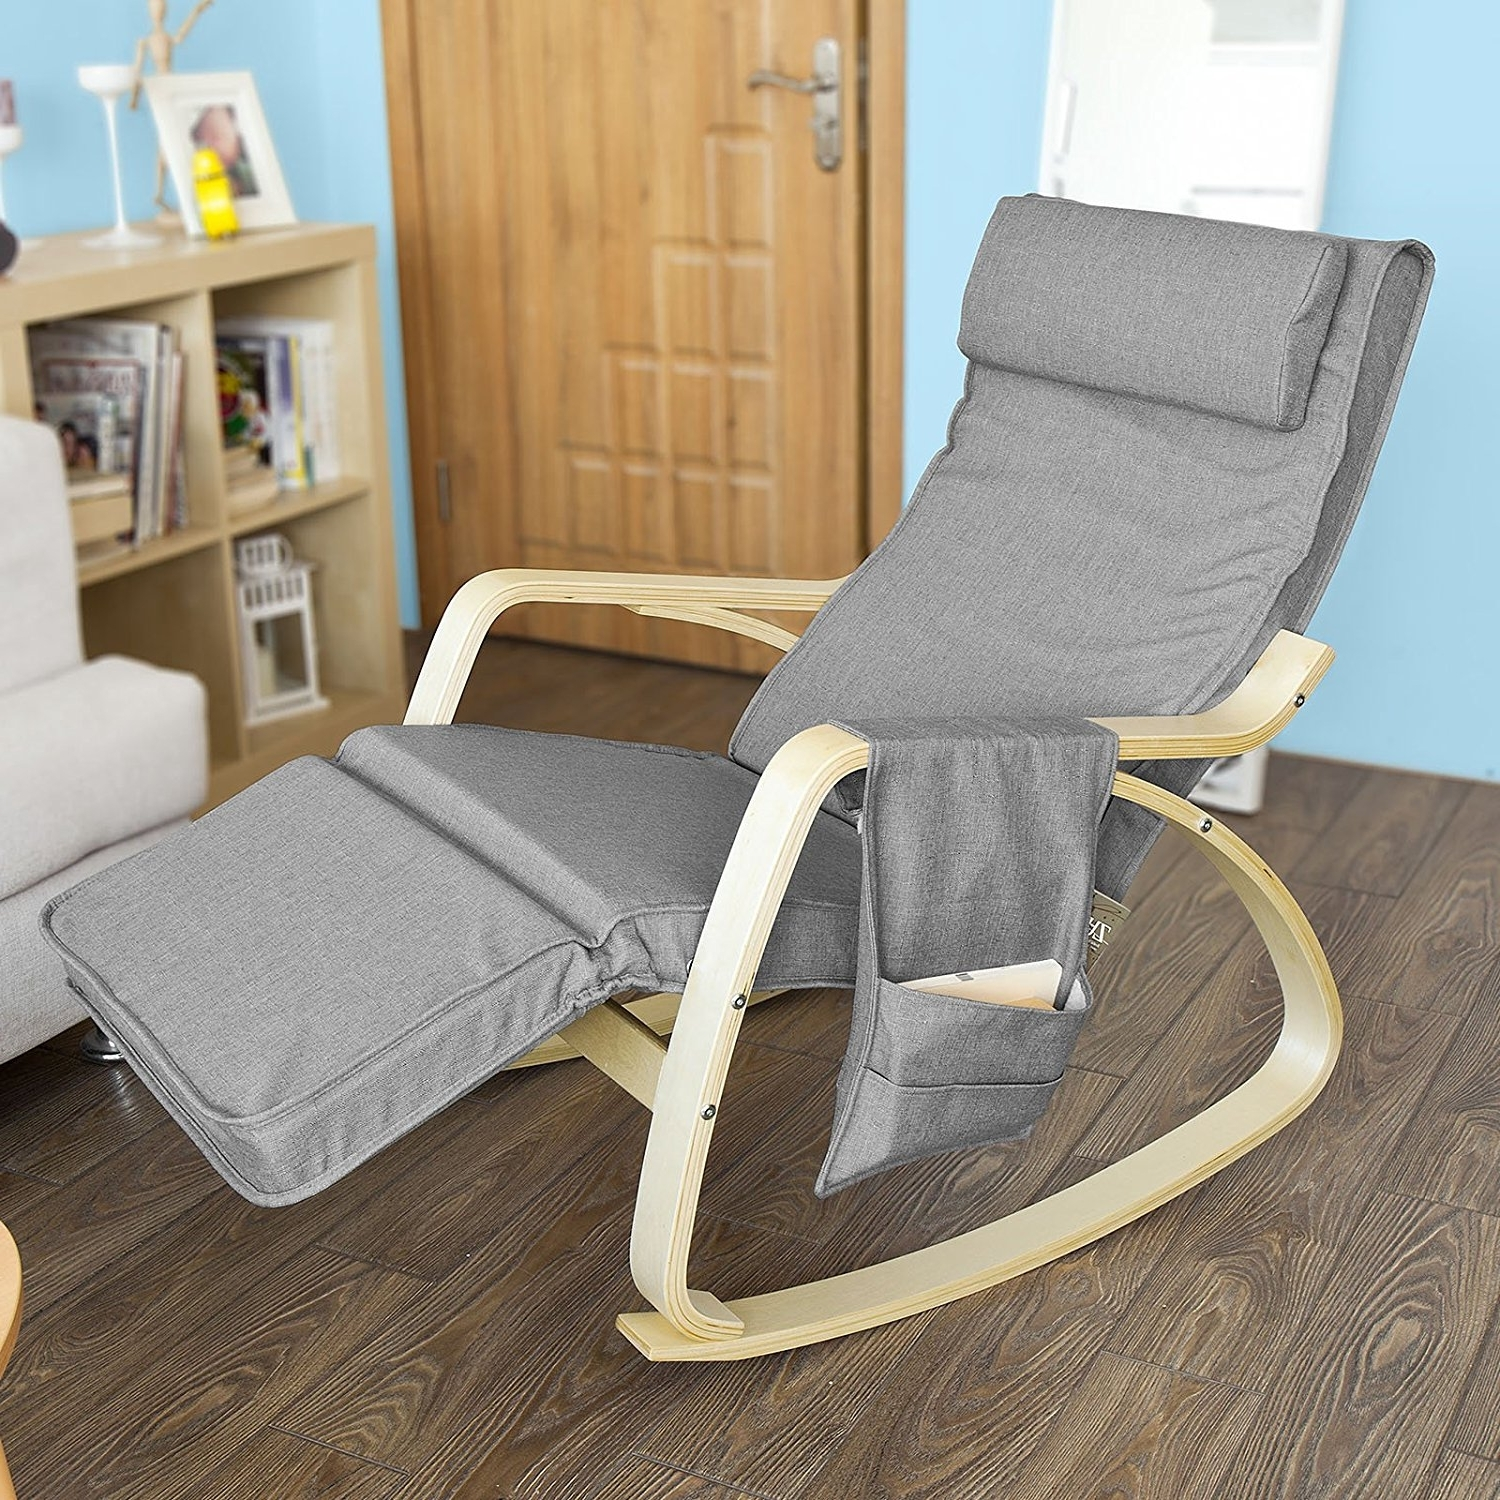 Rock Away Back Pain Using Rocking Chairs/inversiontableplus Intended For Popular Rocking Chairs With Footrest (View 10 of 15)